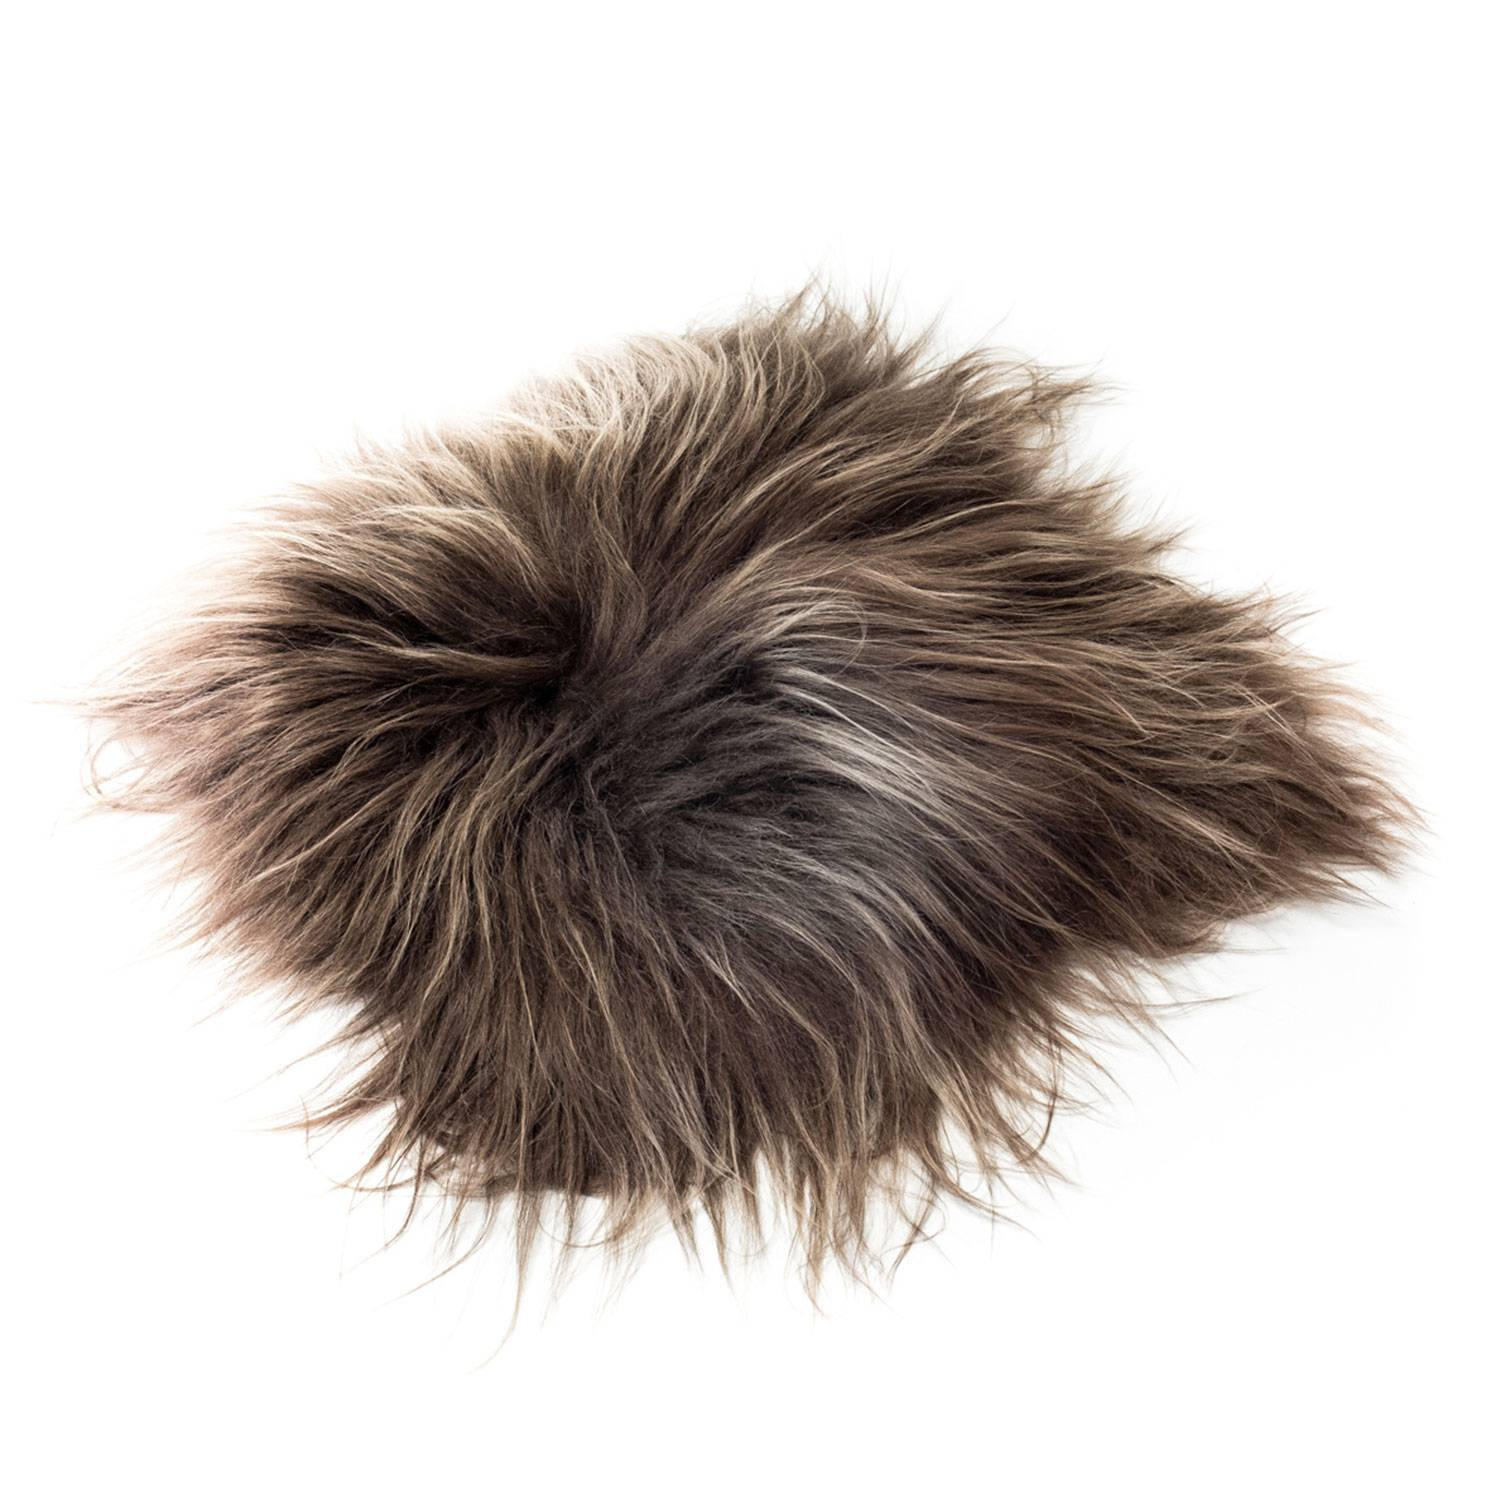 The Organic Sheep Longhair Stolpute, Choko